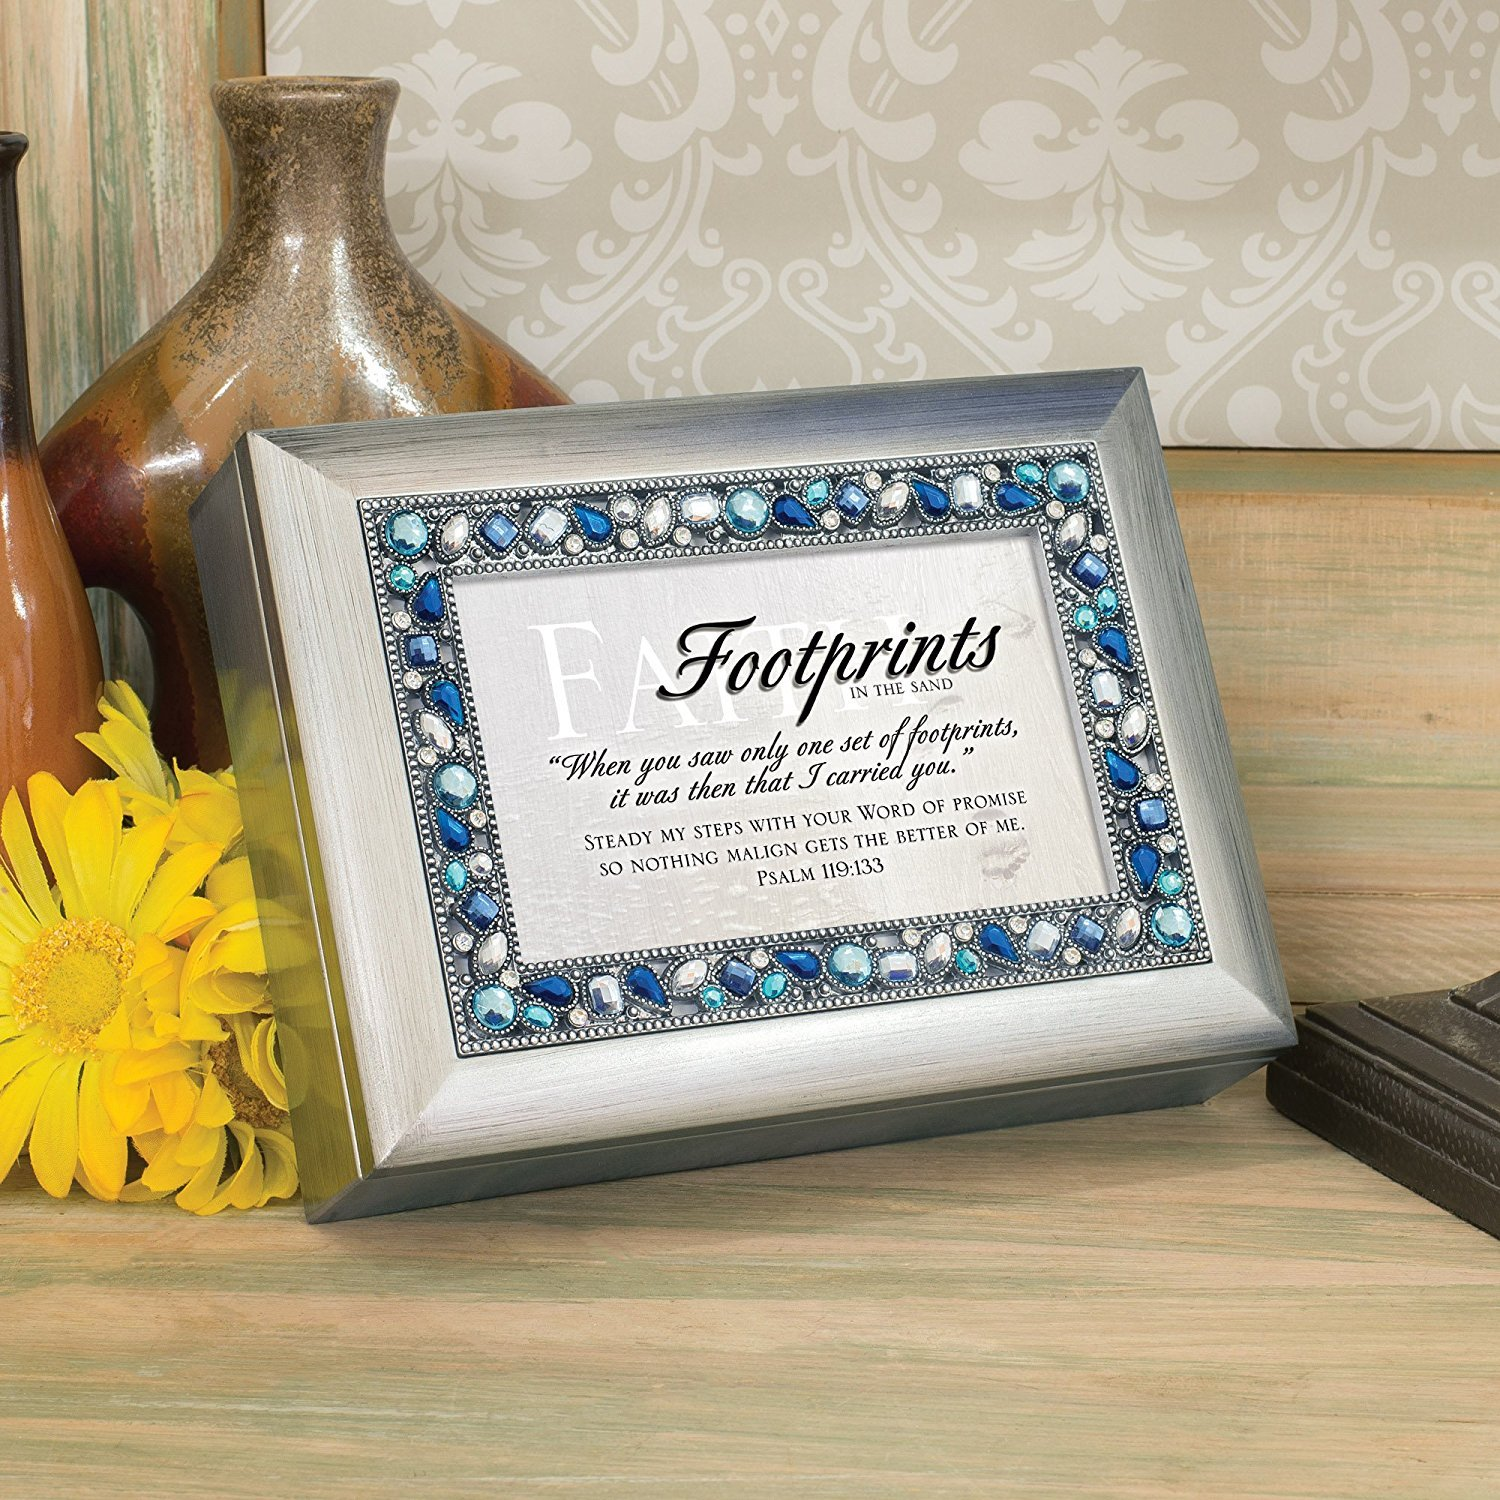 Footprints Brushed Silver Finish Jeweled Lid Jewelry Music Box Plays Tune How Great Thou Art Cottage Garden